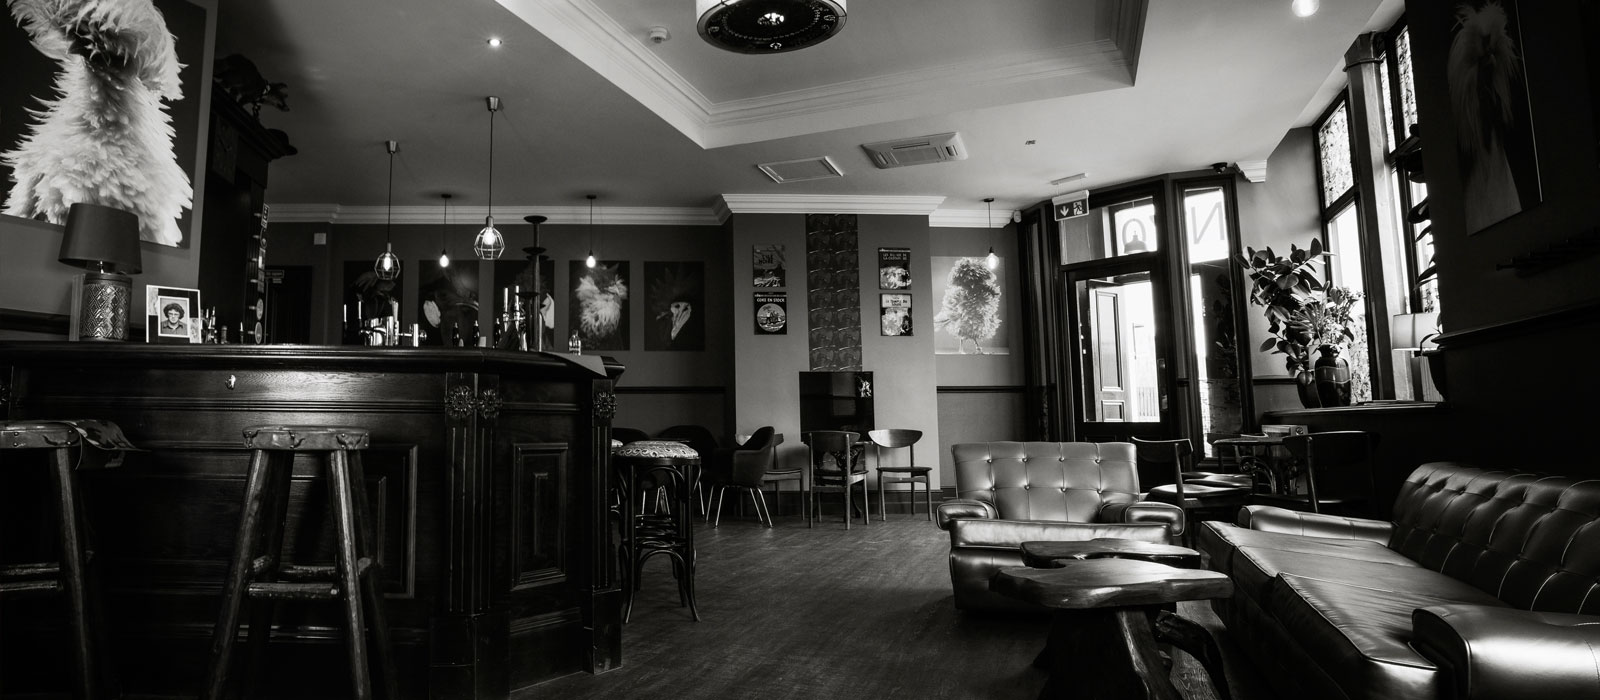 Bespoke independent bar / restaurant